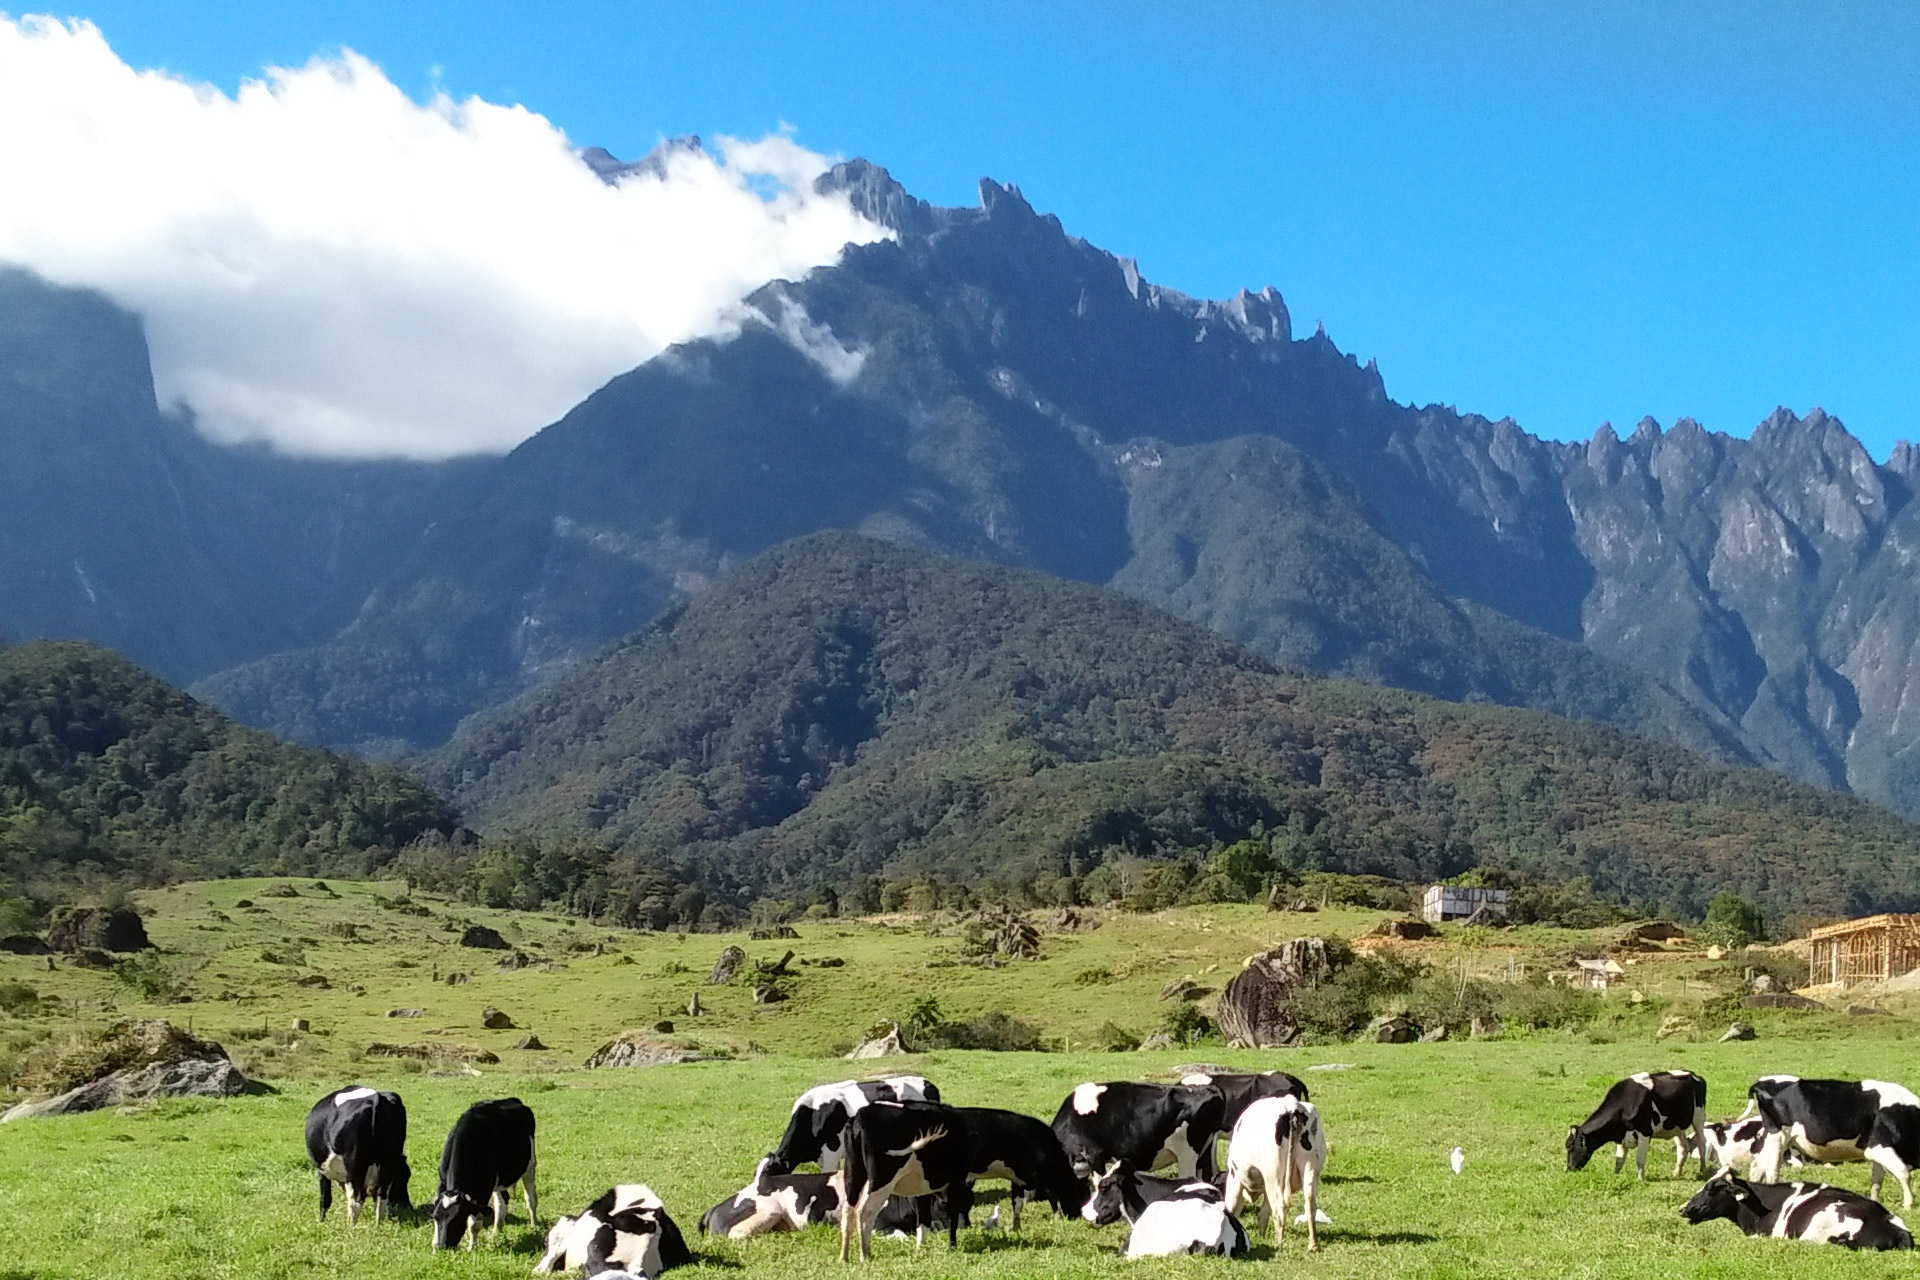 Mount Kinabalu from Desa Cattle Dairy Farm